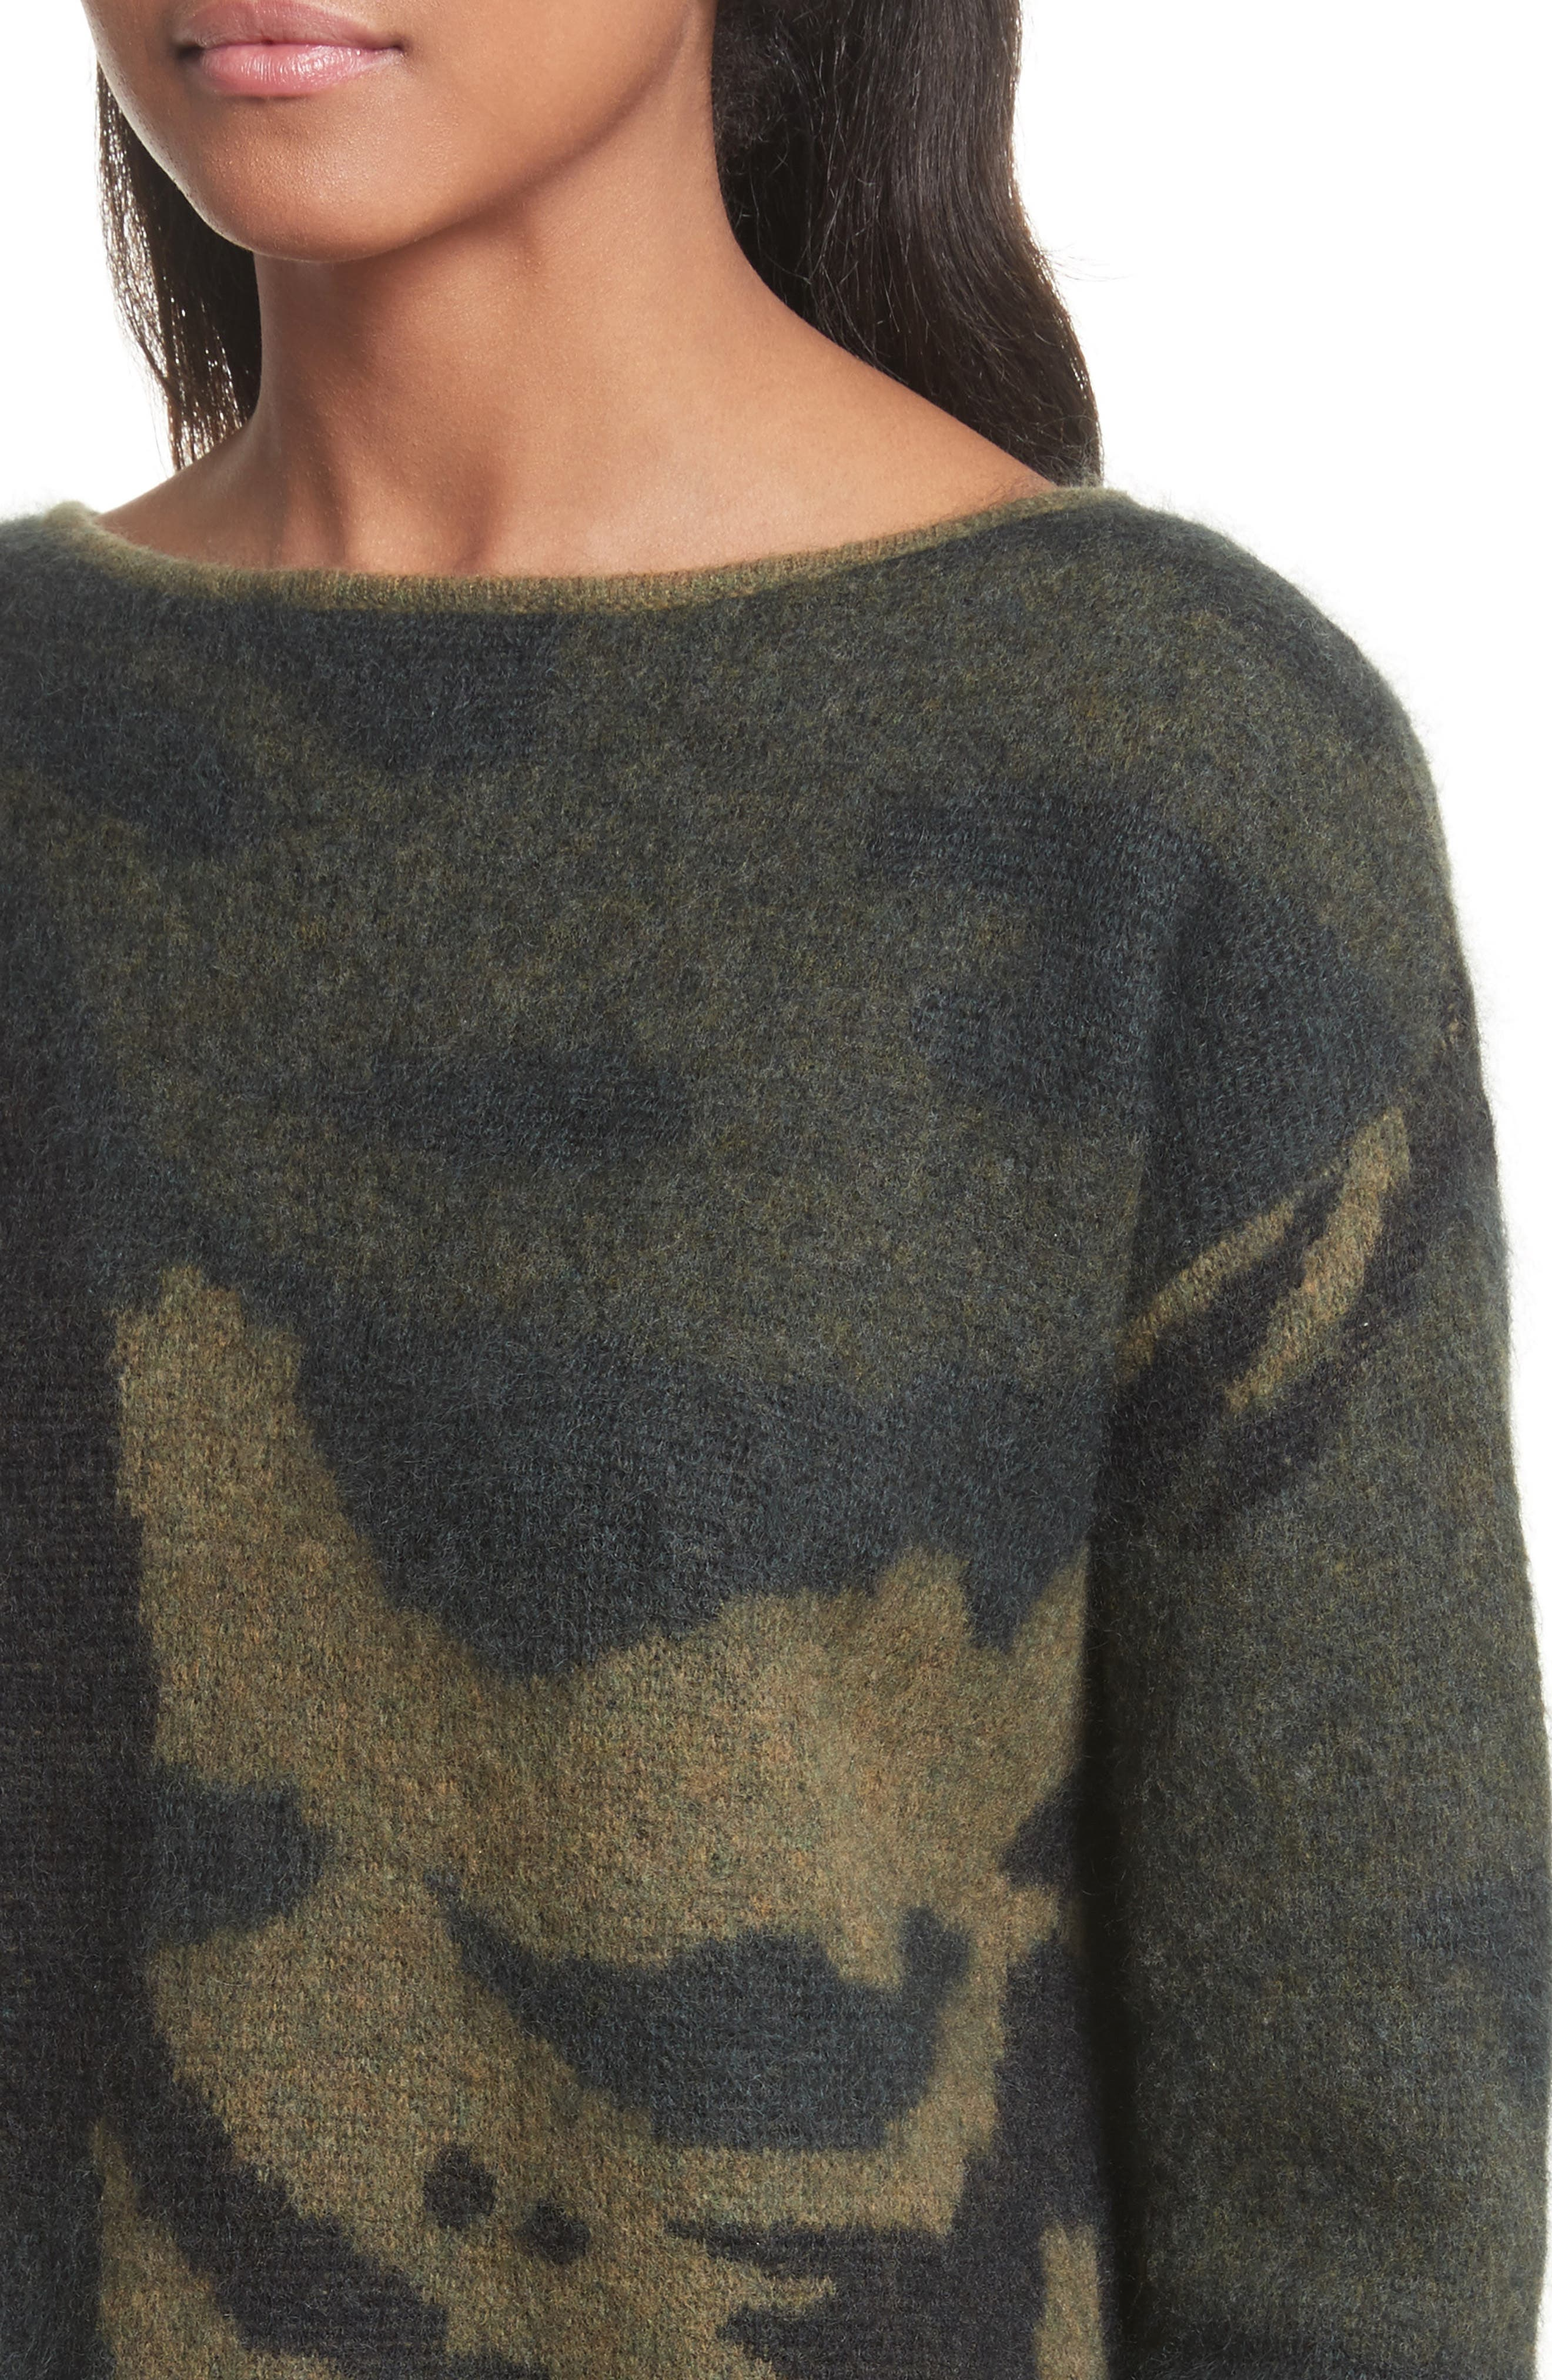 Sinclair Camouflage Jacquard Sweater,                             Alternate thumbnail 4, color,                             319